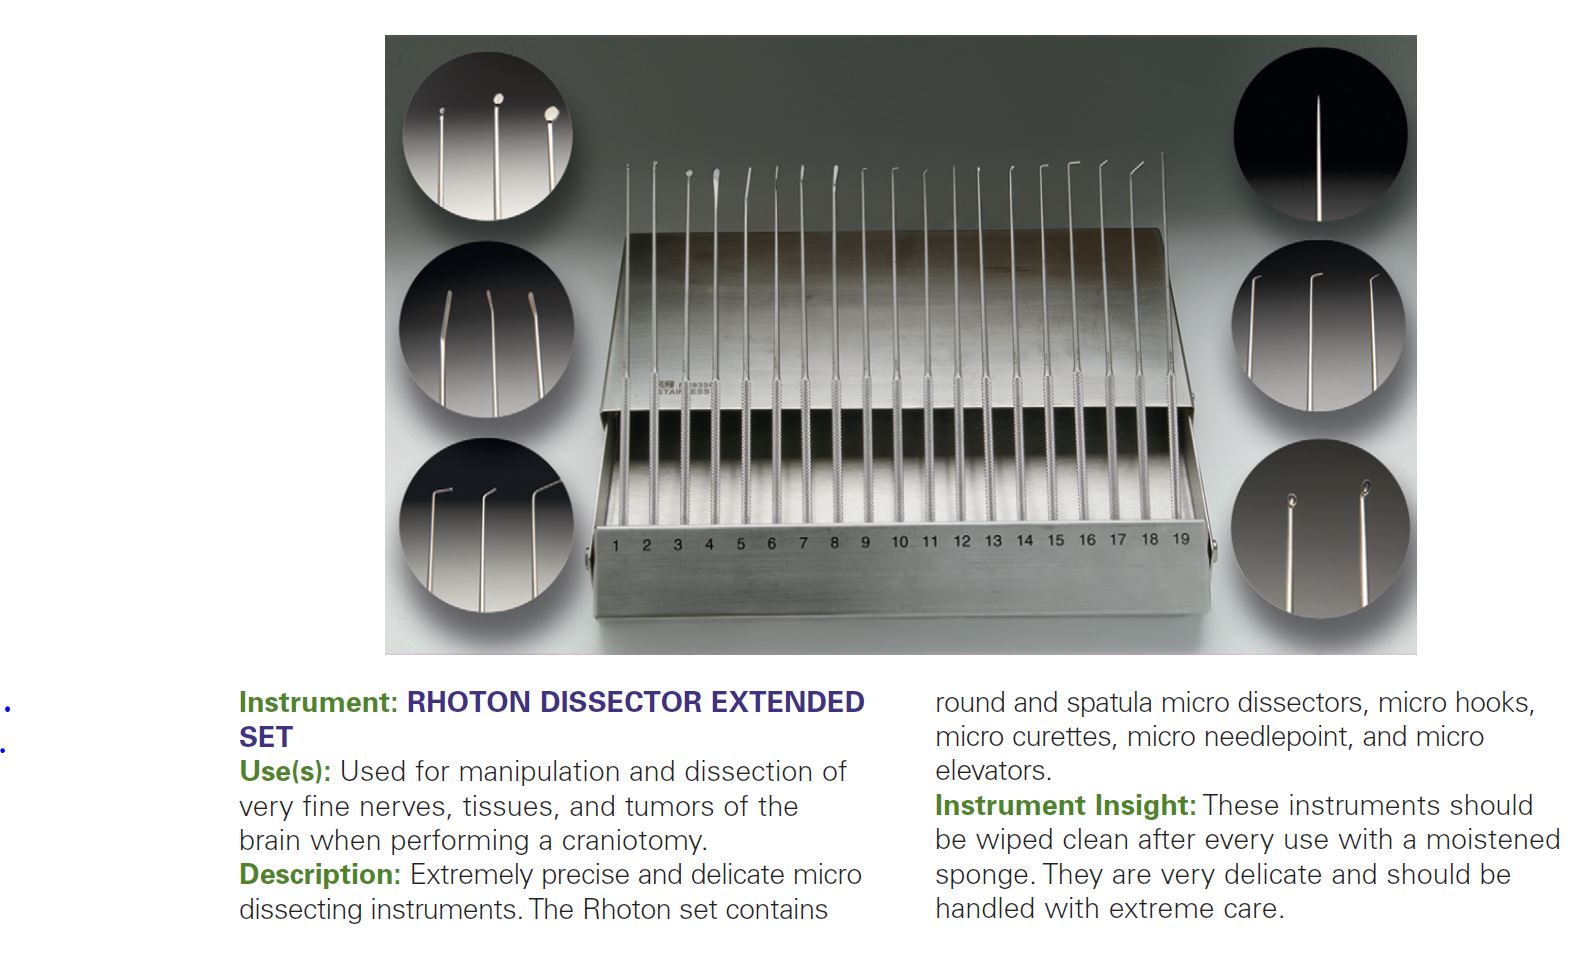 RHOTON DISSECTOR EXTENDED SET